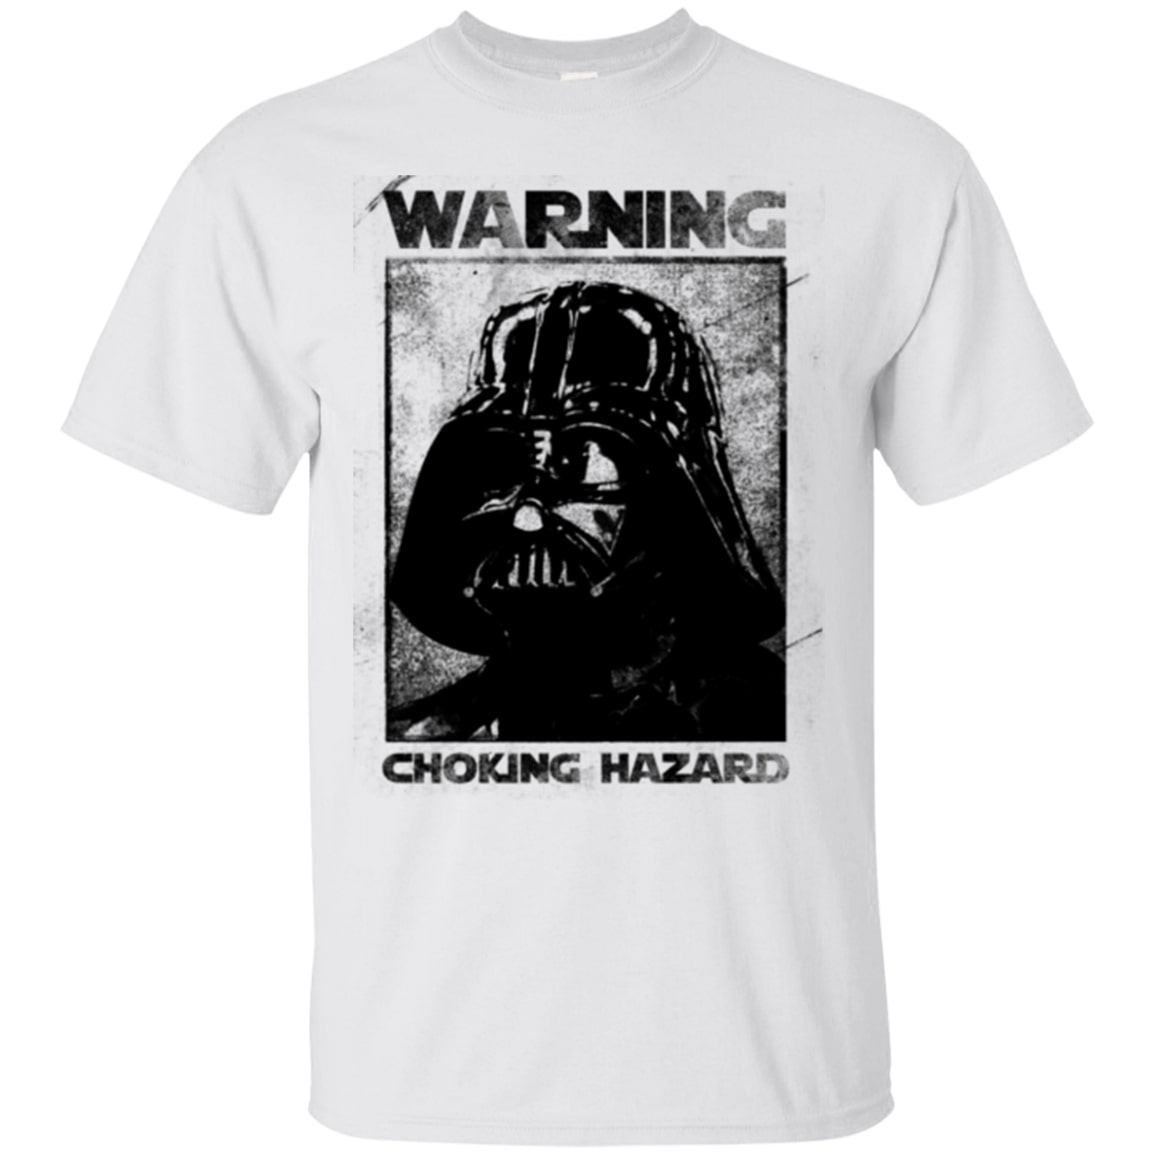 star wars darth vader warning choking hazard shirt 2